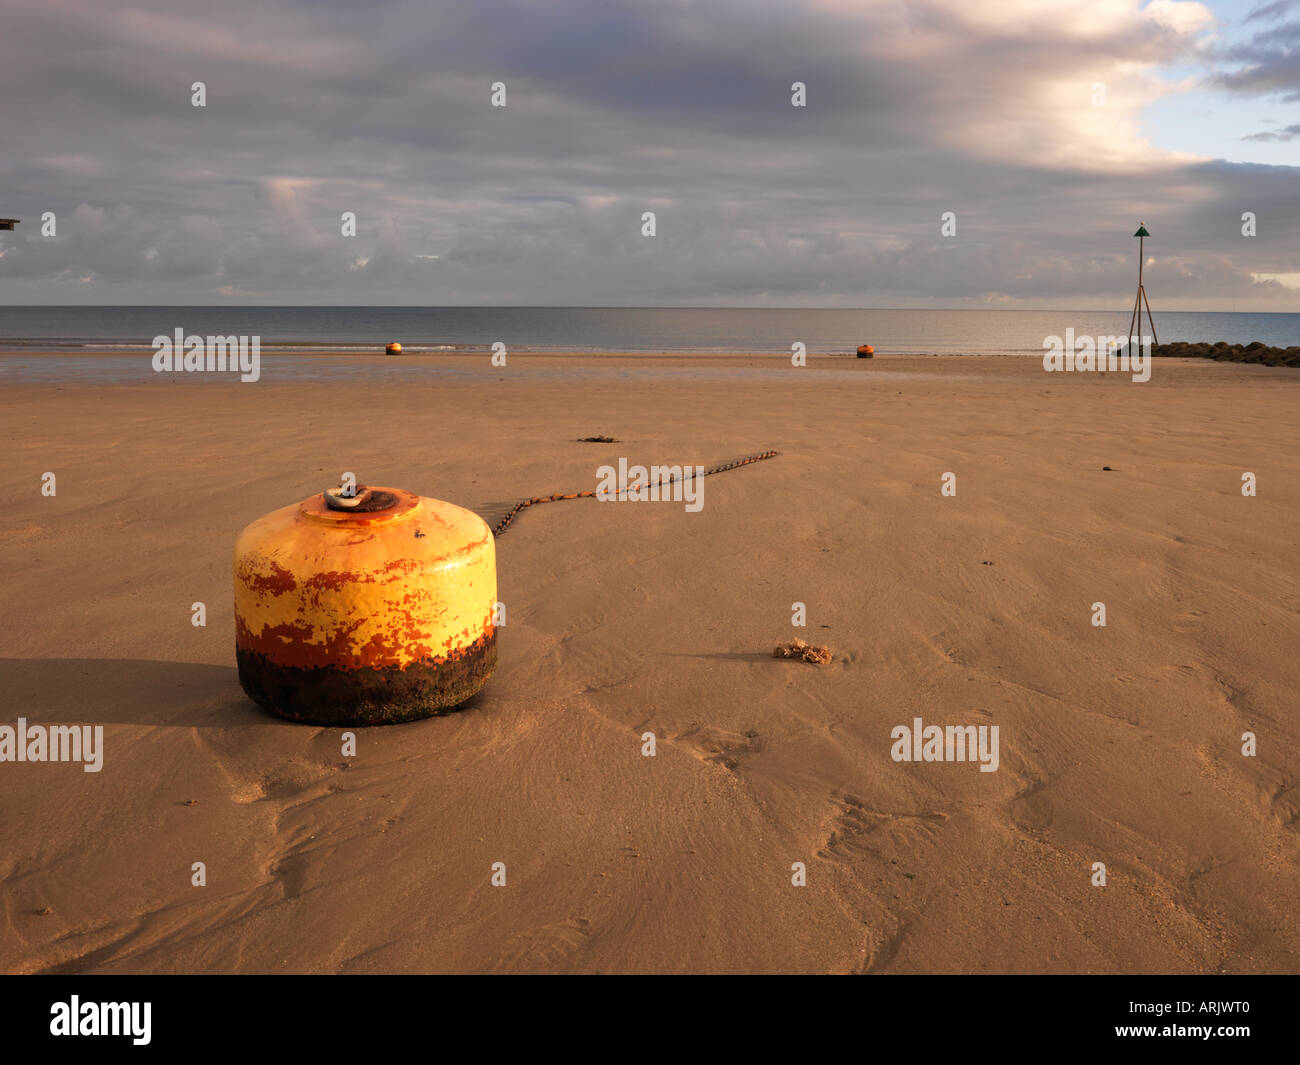 Buoy and chain on beach, Rhos-on-Sea, Wales, Summer 2006 - Stock Image